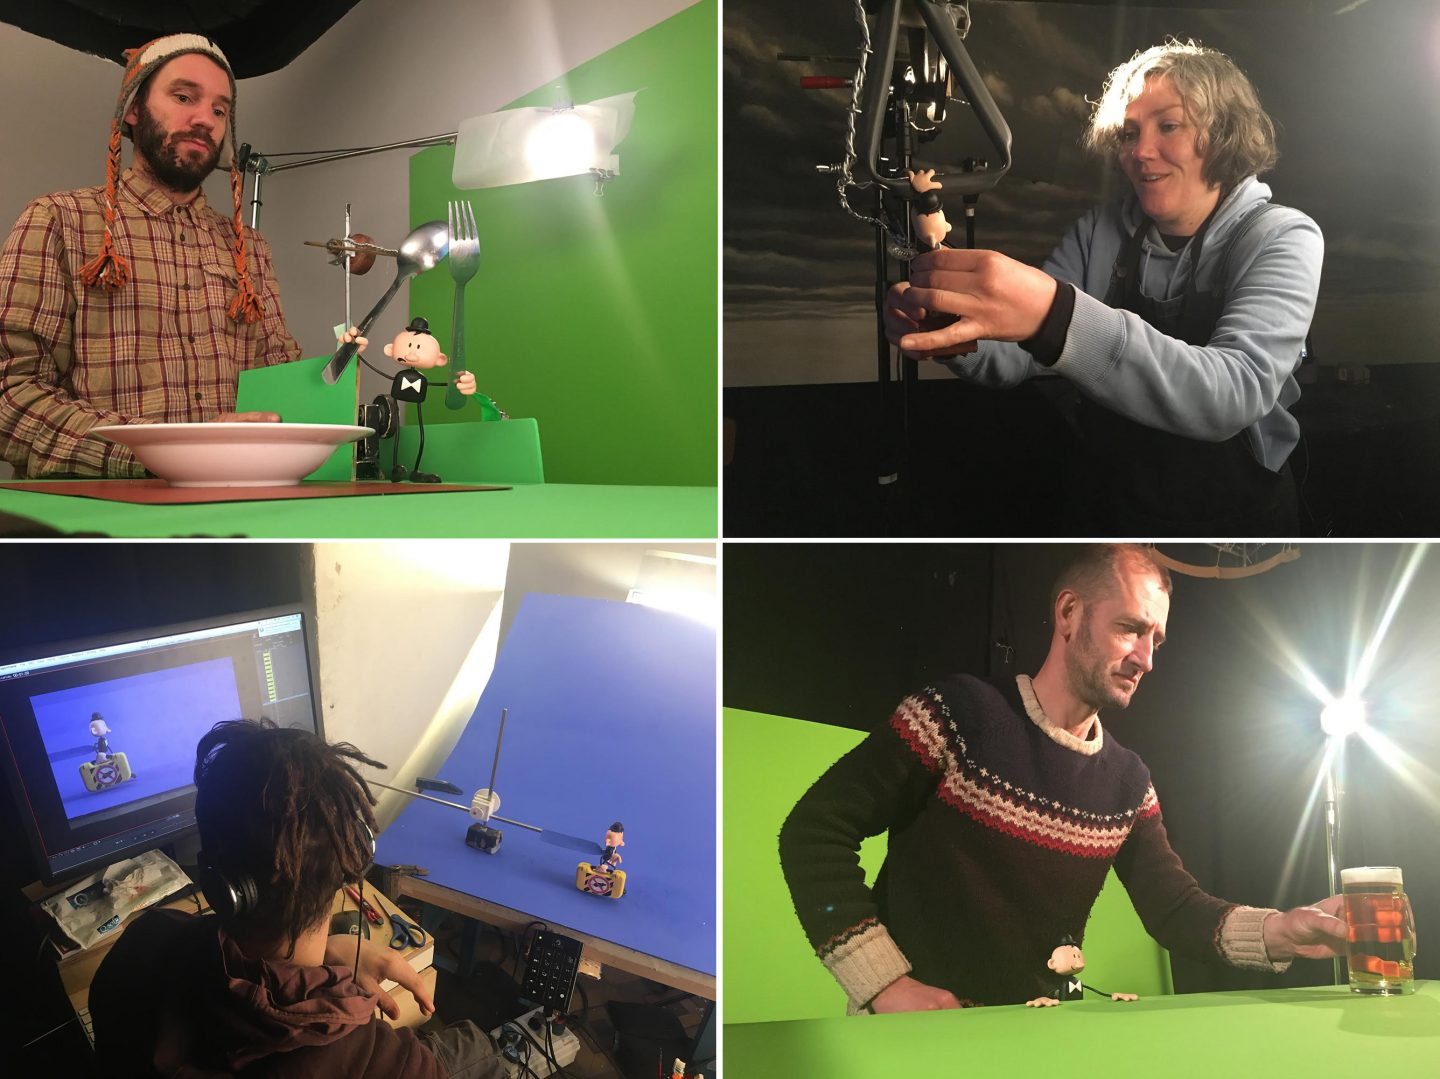 "'Tiniest Man"" animators (clockwise from upper left): Mariano Bergara, Souad Wedell, Gilles Coirier, Becho Lo Bianco."